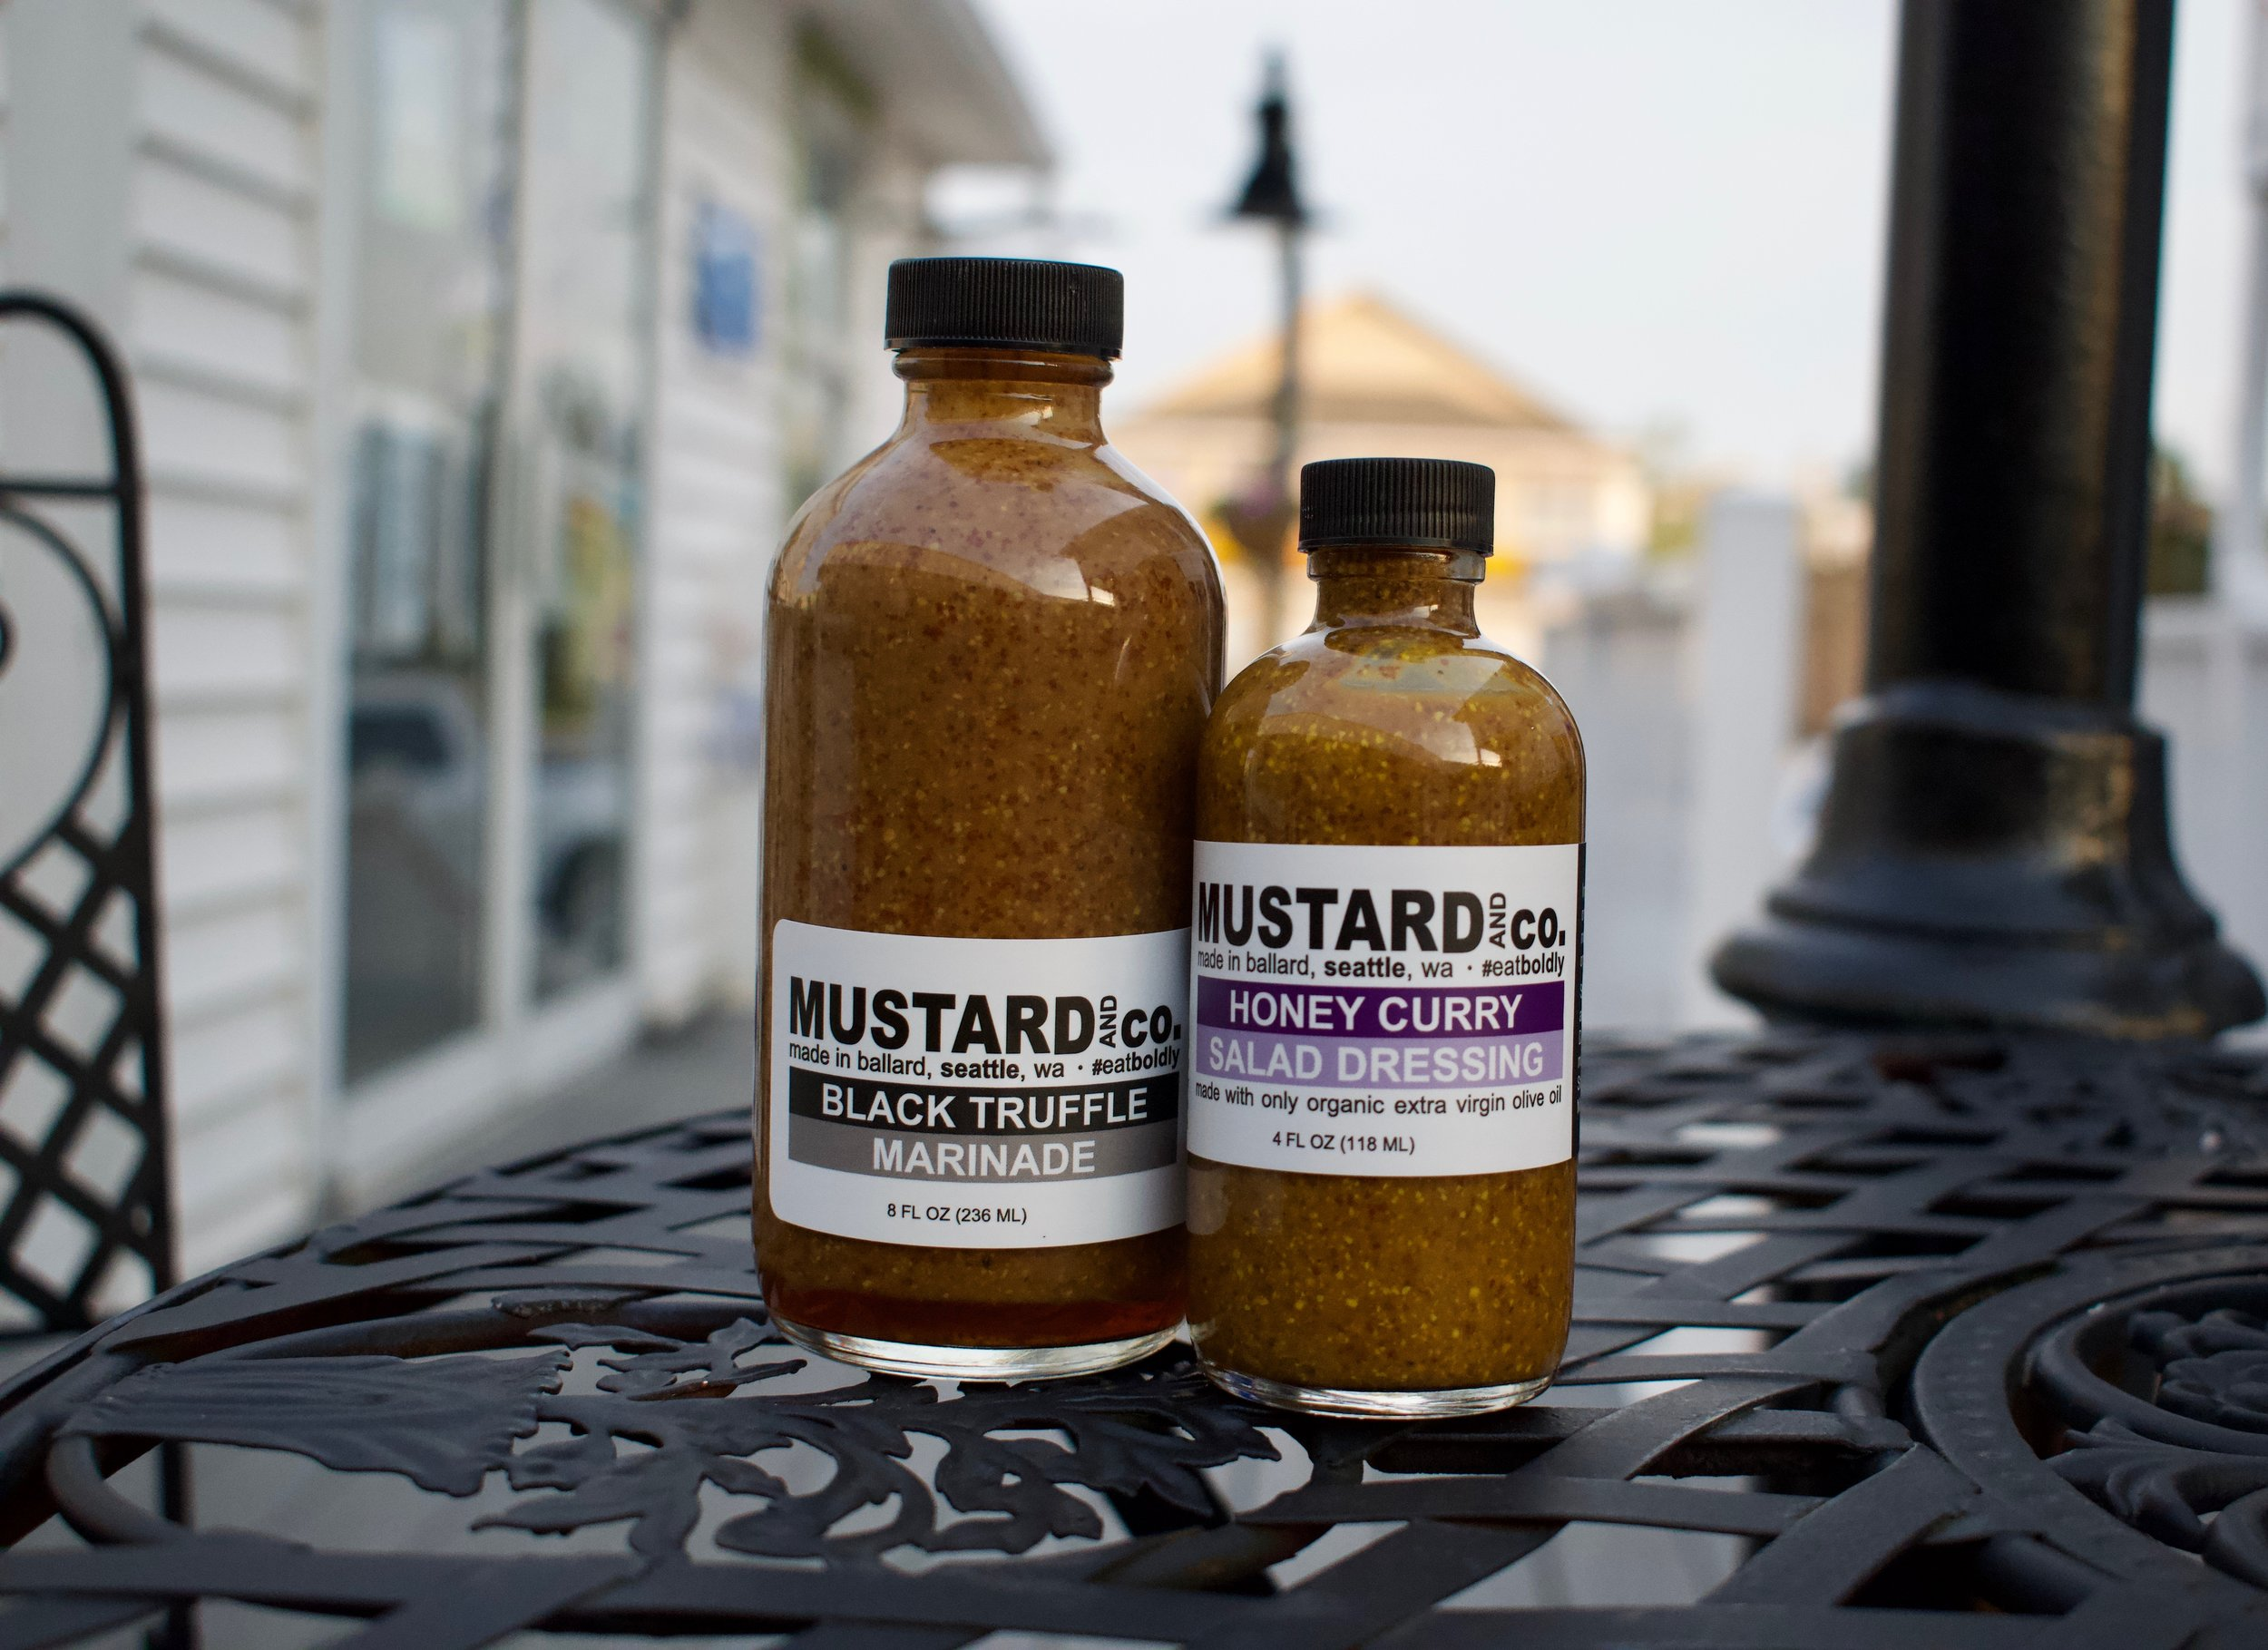 5. Black Truffle Marinade and Honey Curry salad dressing